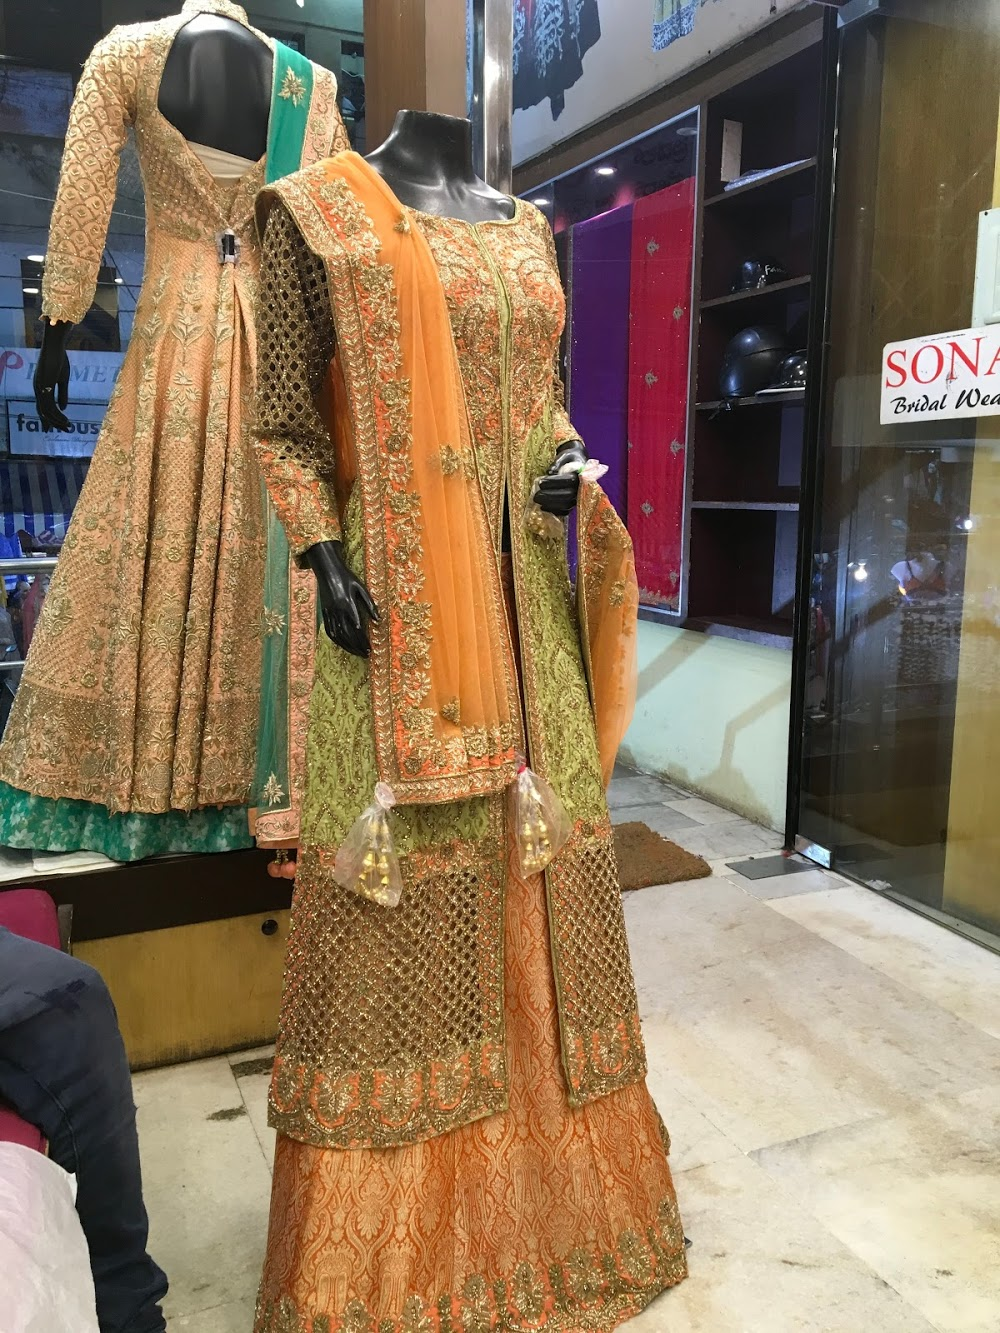 Sona Bridal Wear photo